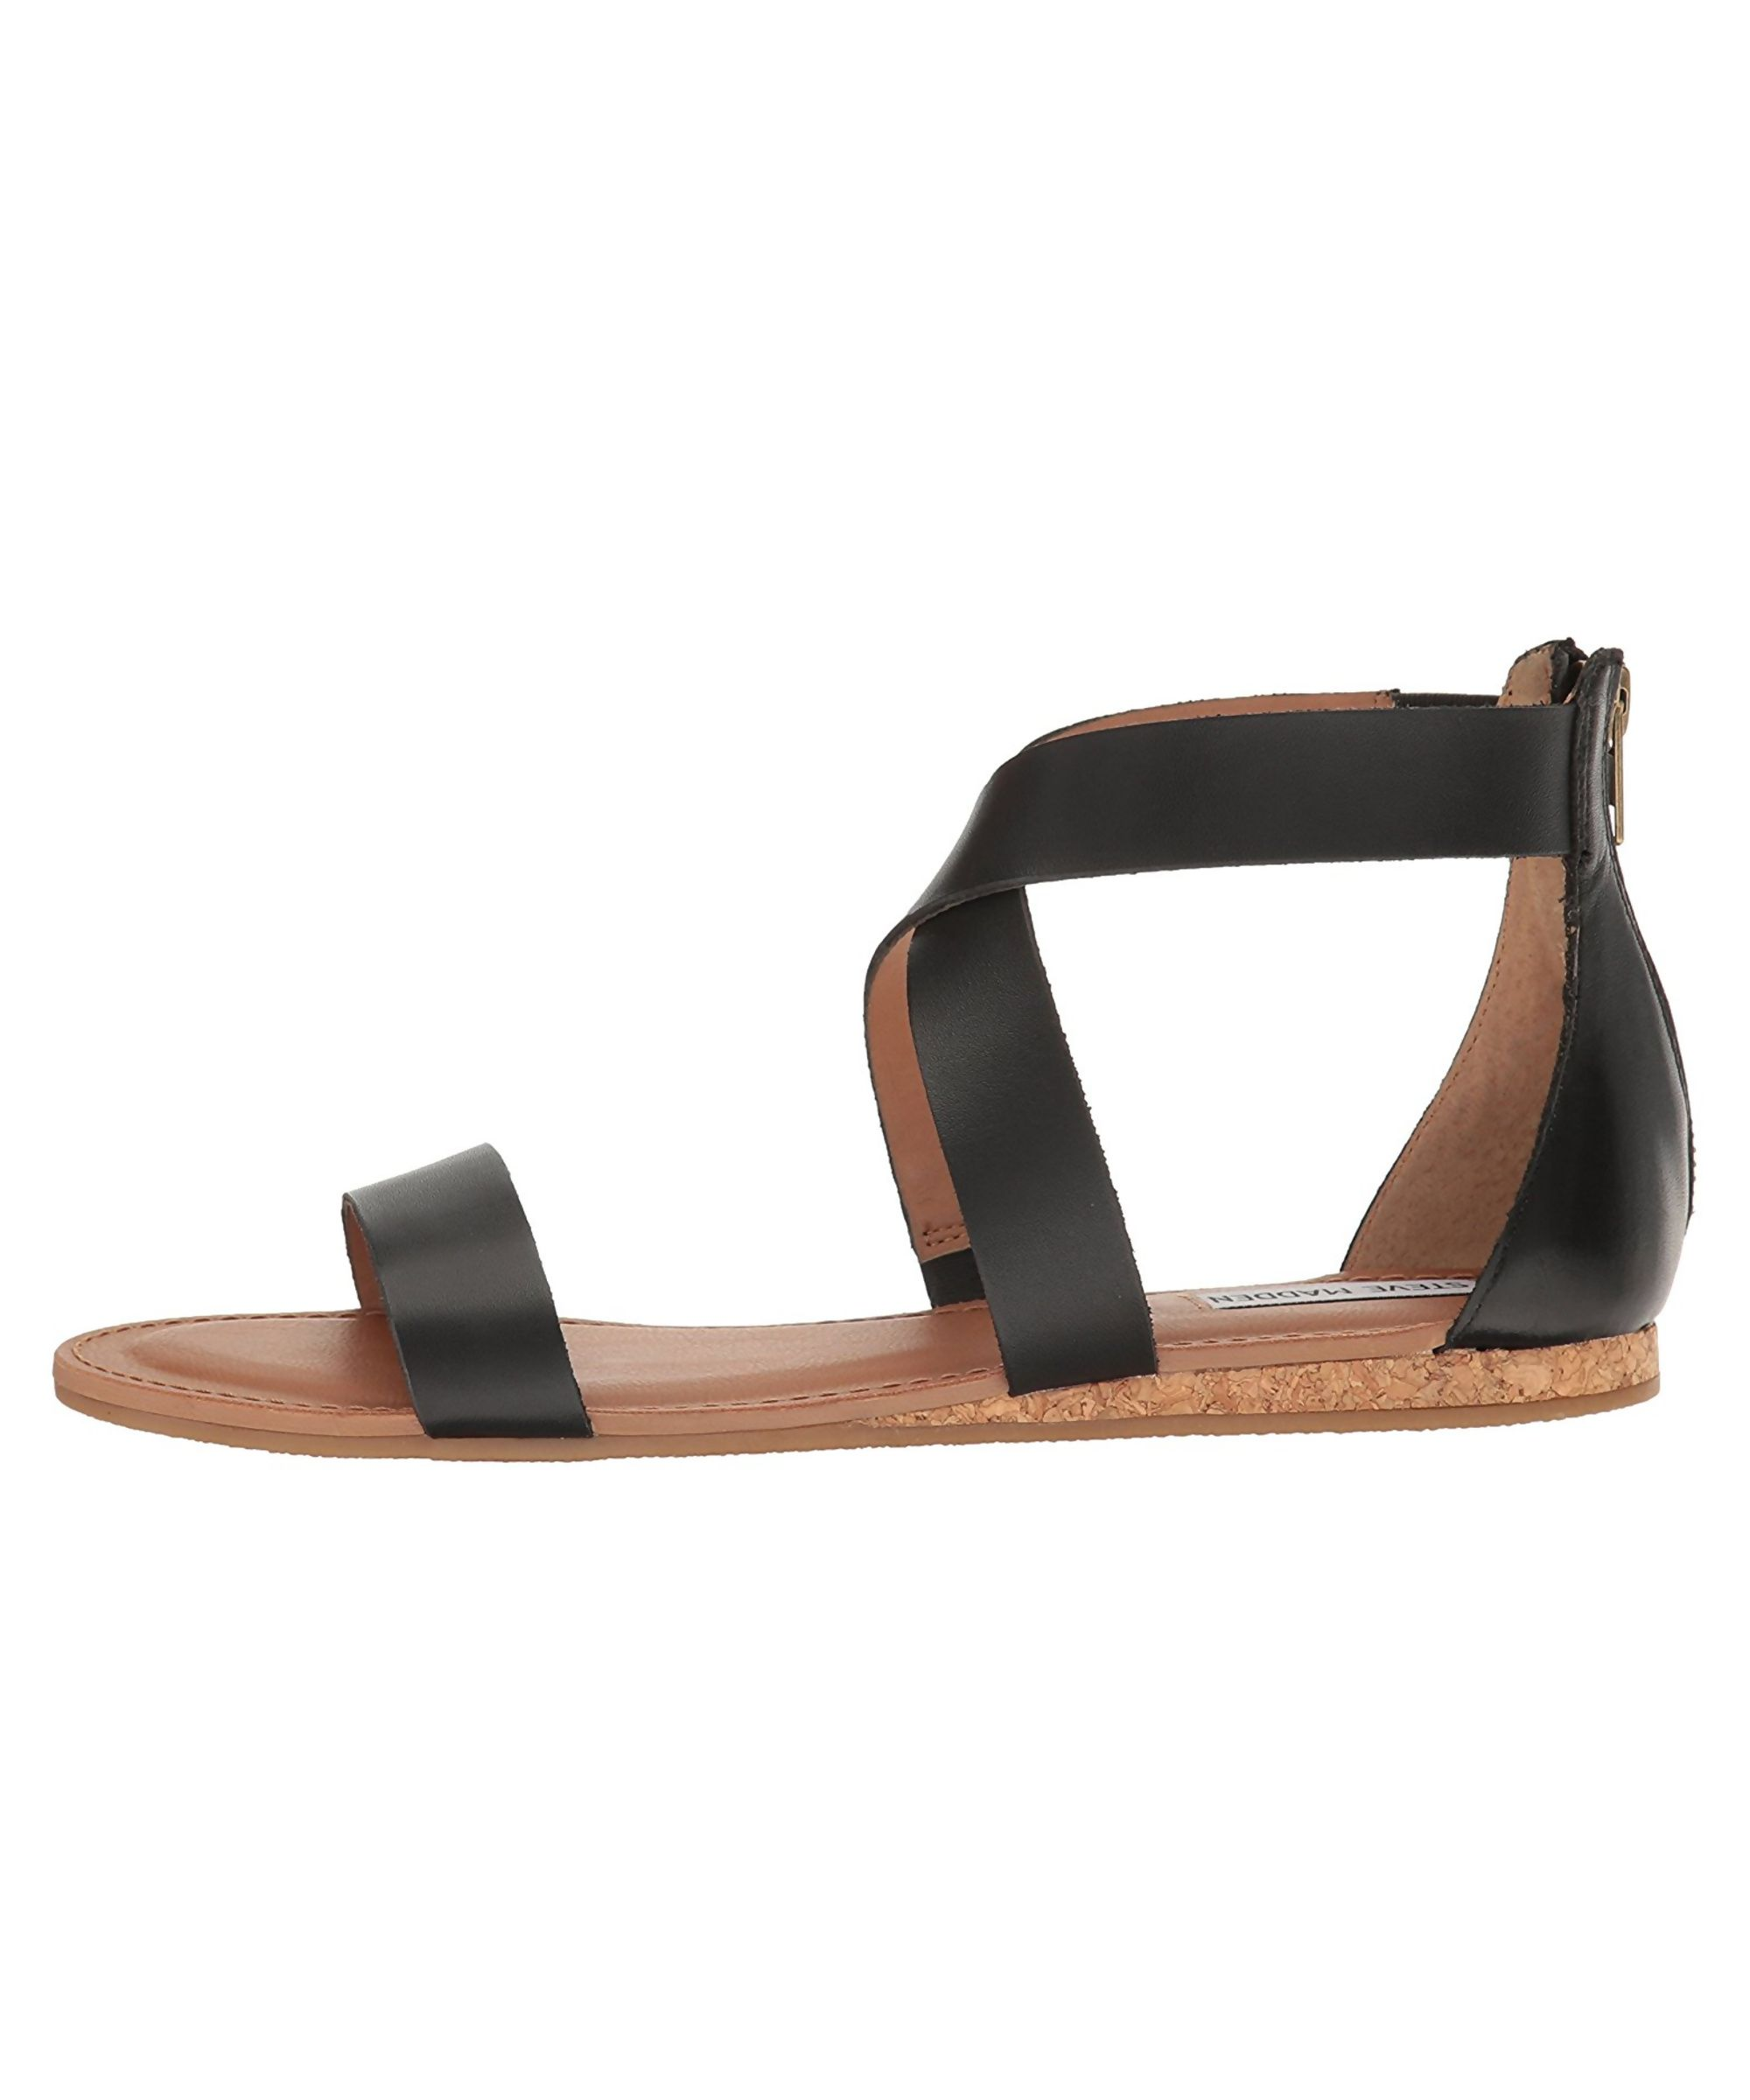 STEVE MADDEN | Steve Madden Womens Halley Open Toe Casual Strappy Sandals # Shoes #Sandals